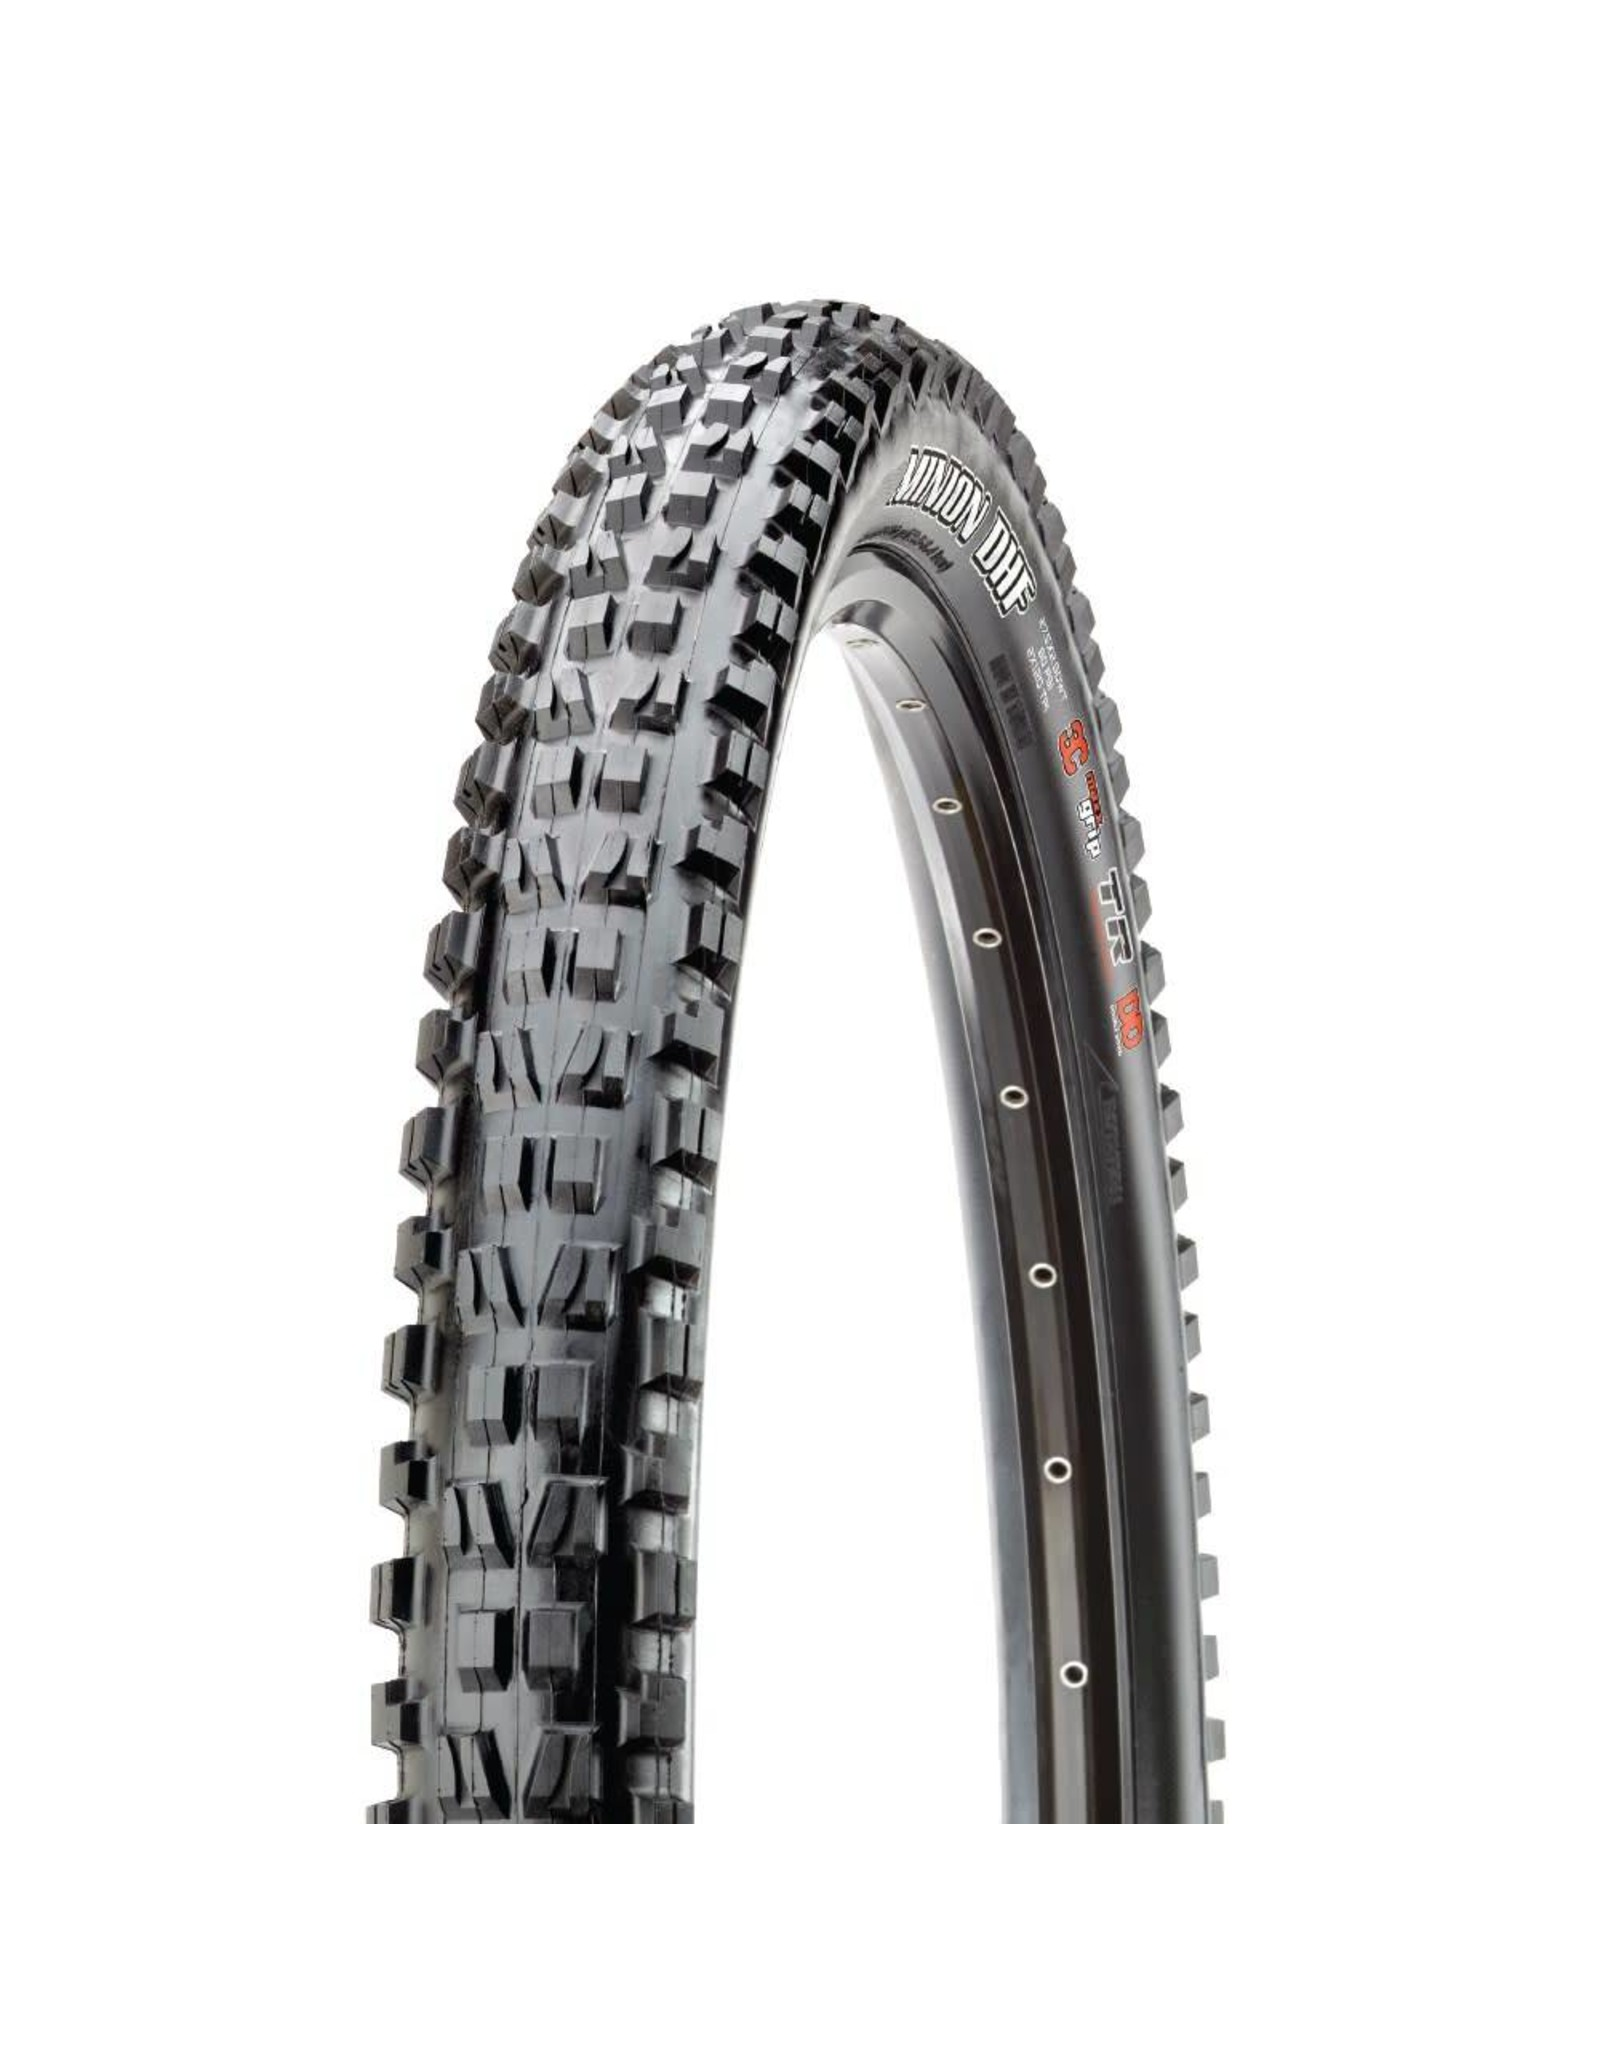 "Maxxis Maxxis Minion DHF Tire: 27.5 x 2.50"", Folding, 60tpi, Dual Compound, EXO, Tubeless Ready, Wide Trail, Black"